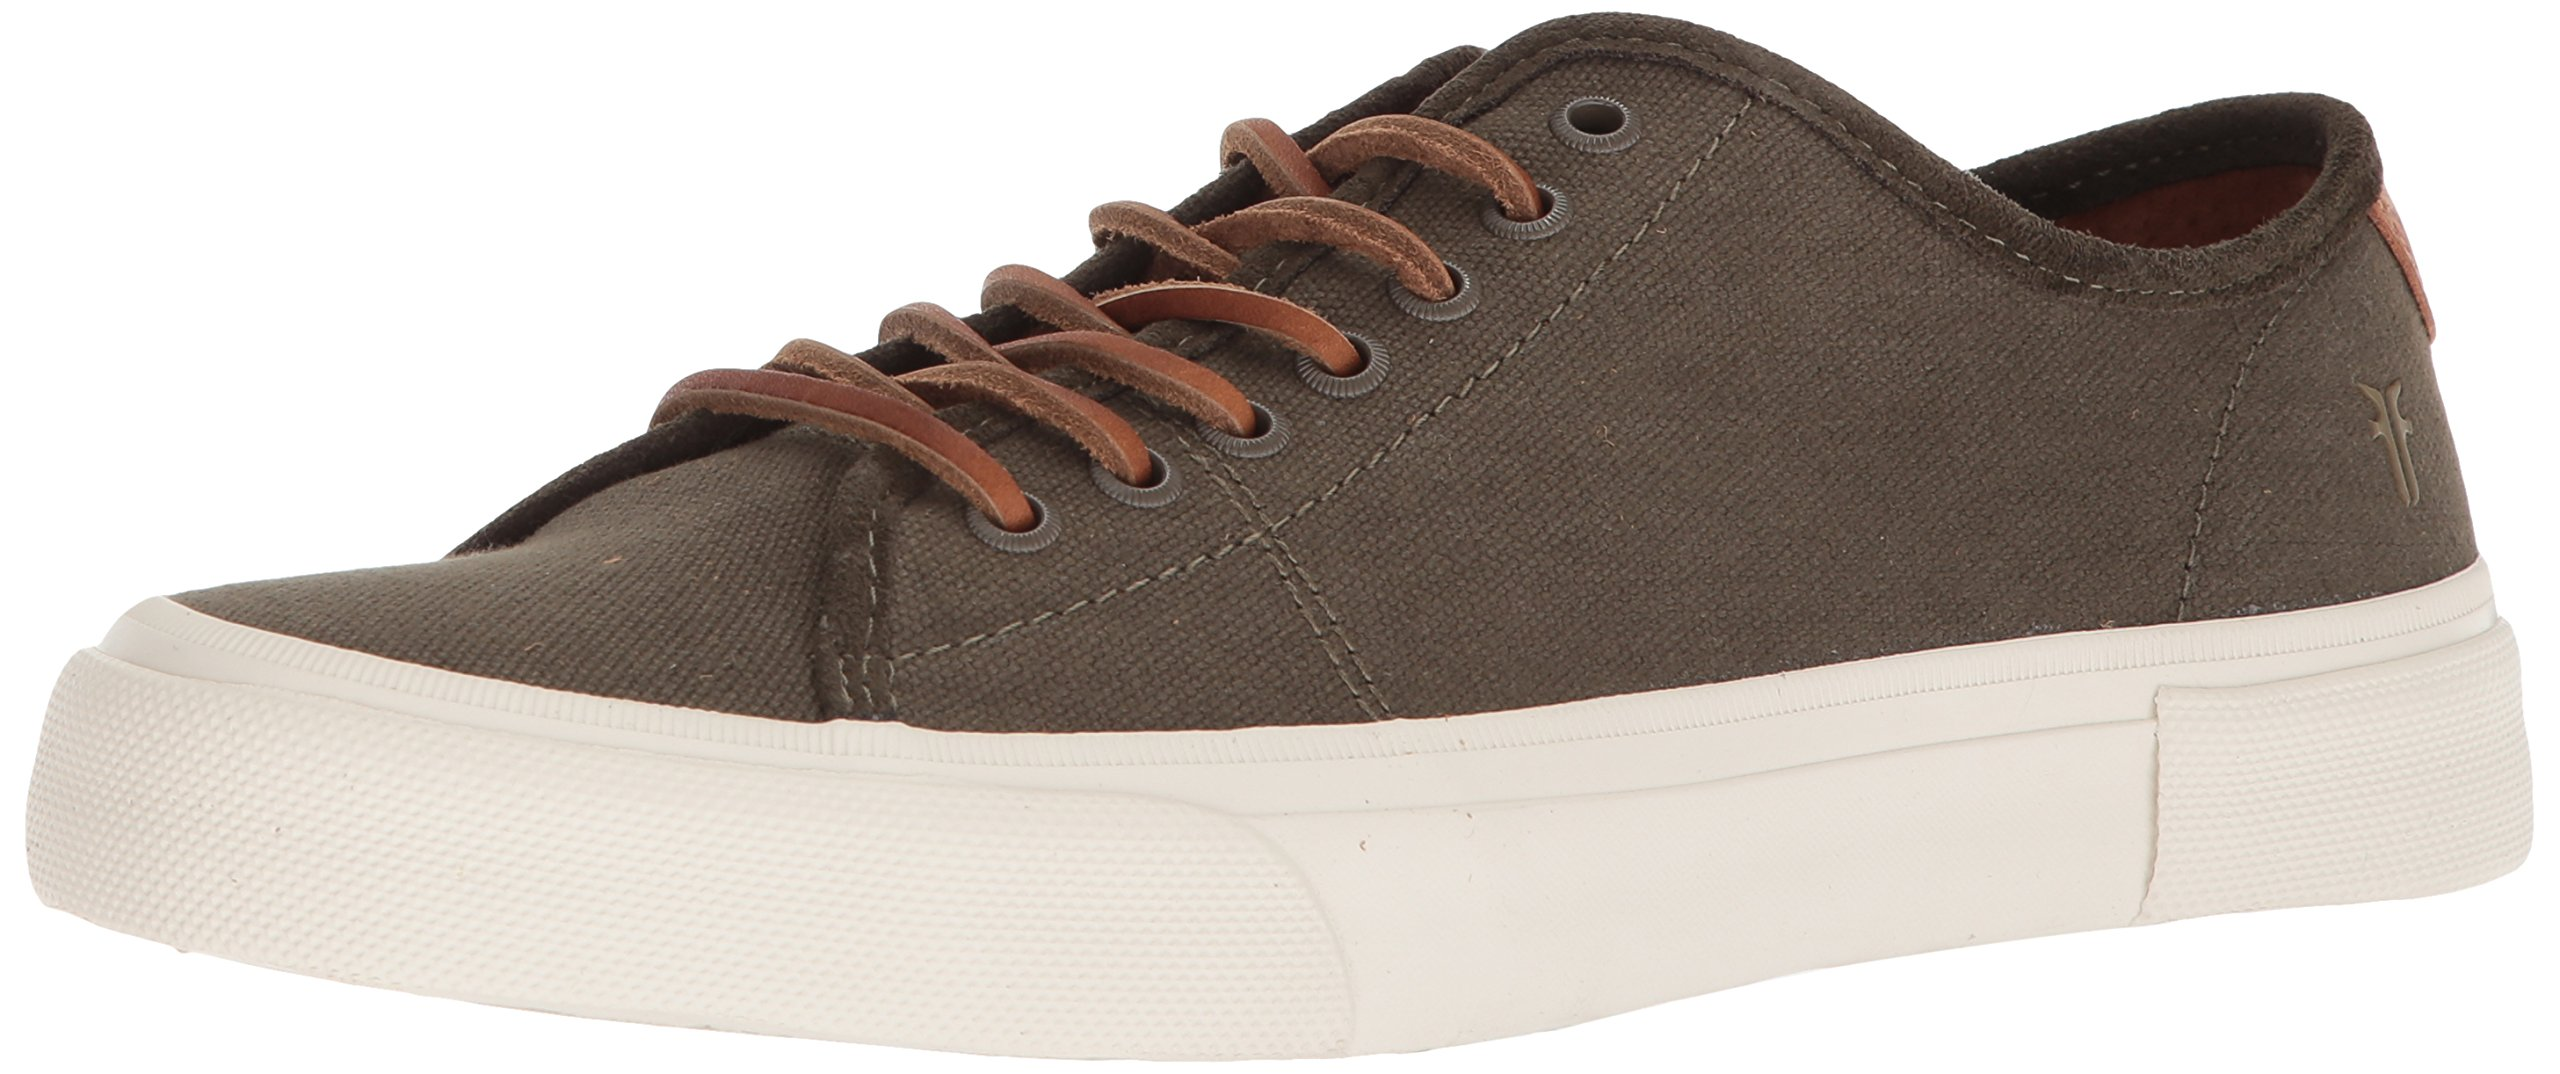 Homme FRYE LudFaible Faible Tennis Chaussure, Olive, 13 M-Choisir Taille couleur